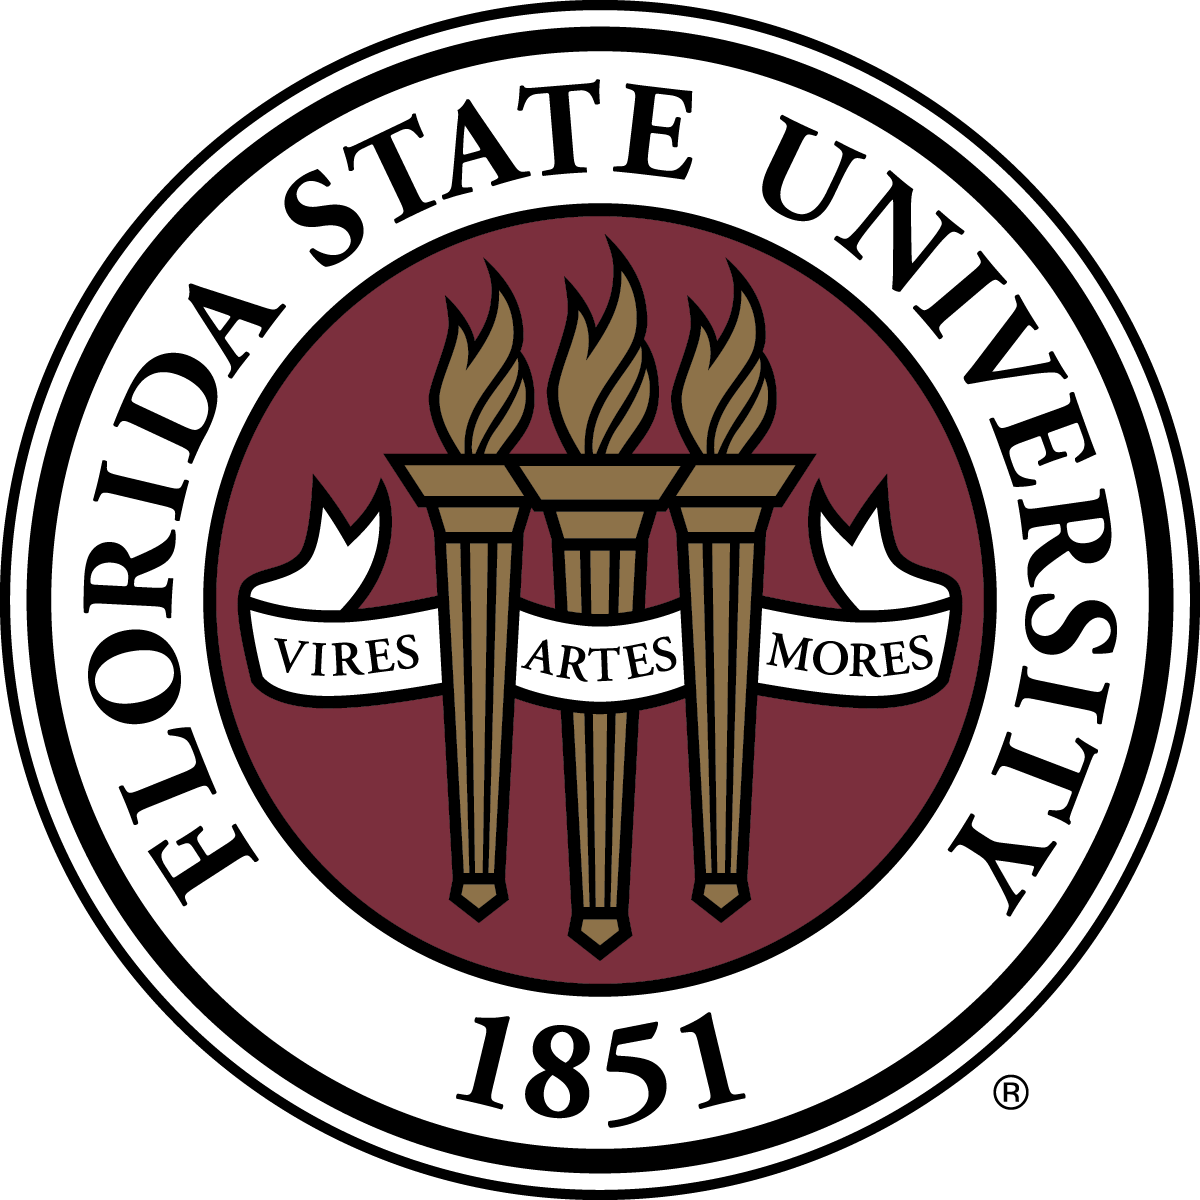 Florida state png. Image gallery university seal